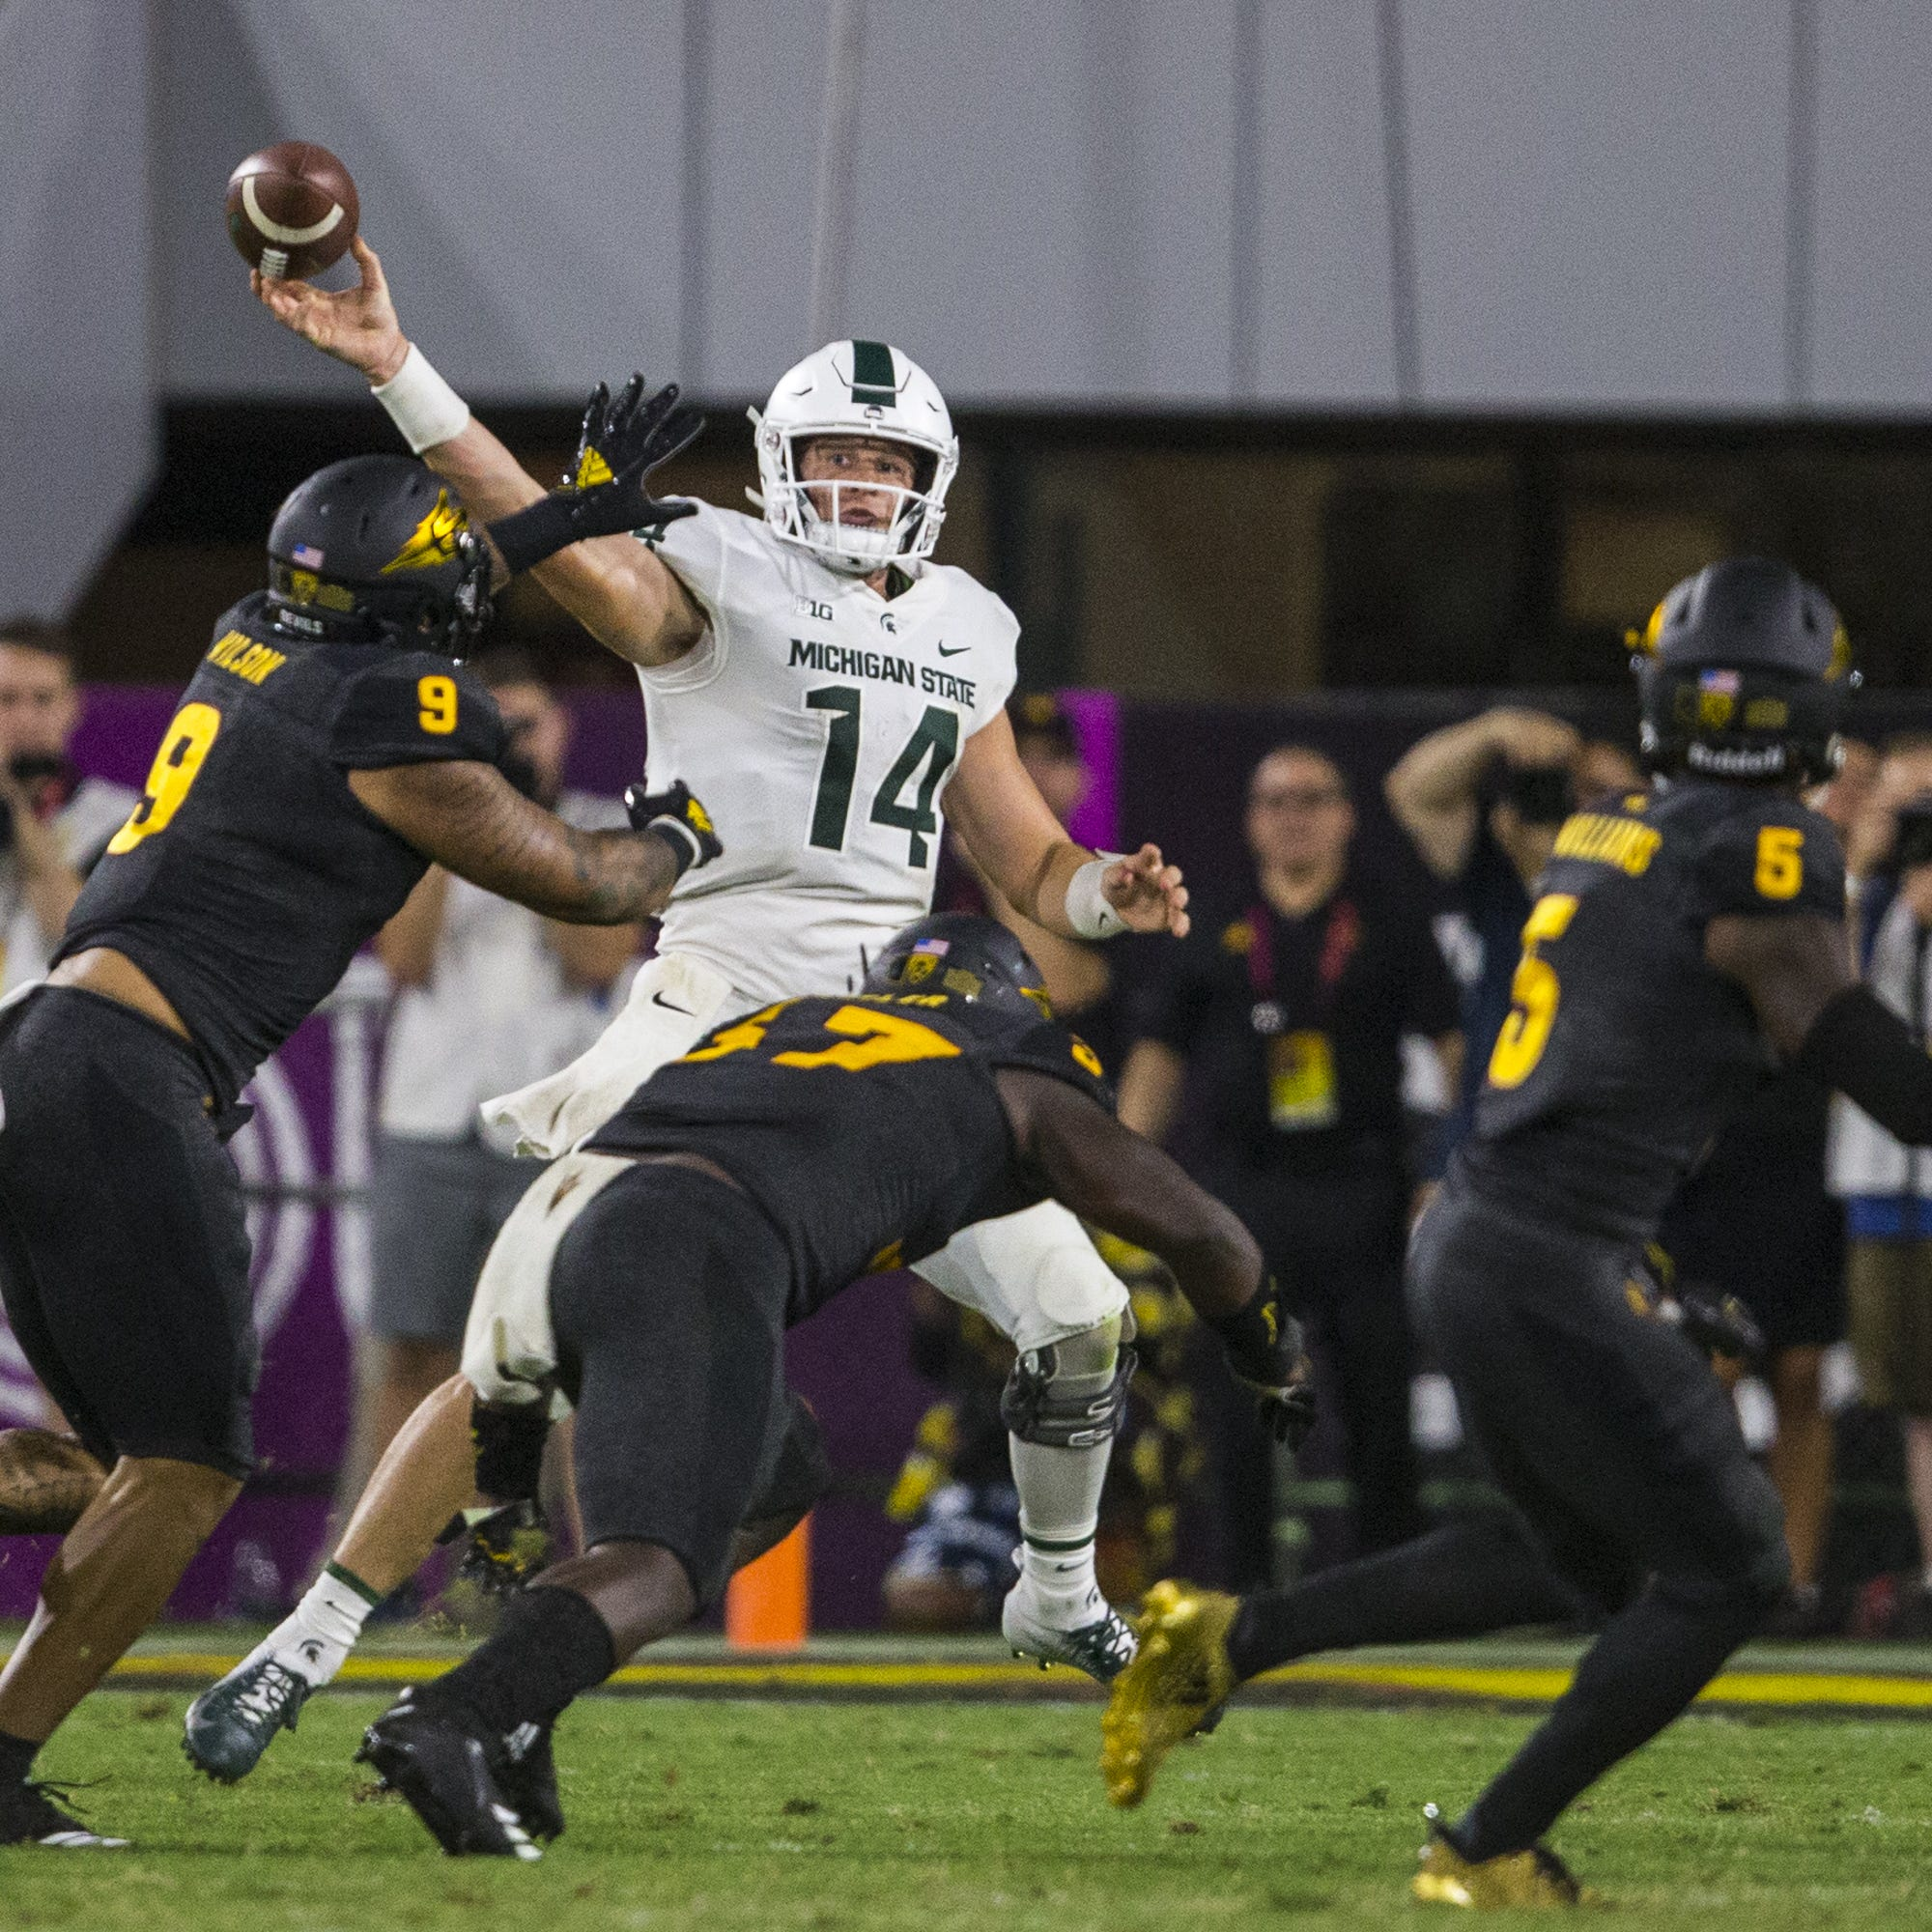 Arizona State radio guy: Michigan State must out-muscle, run over Oregon